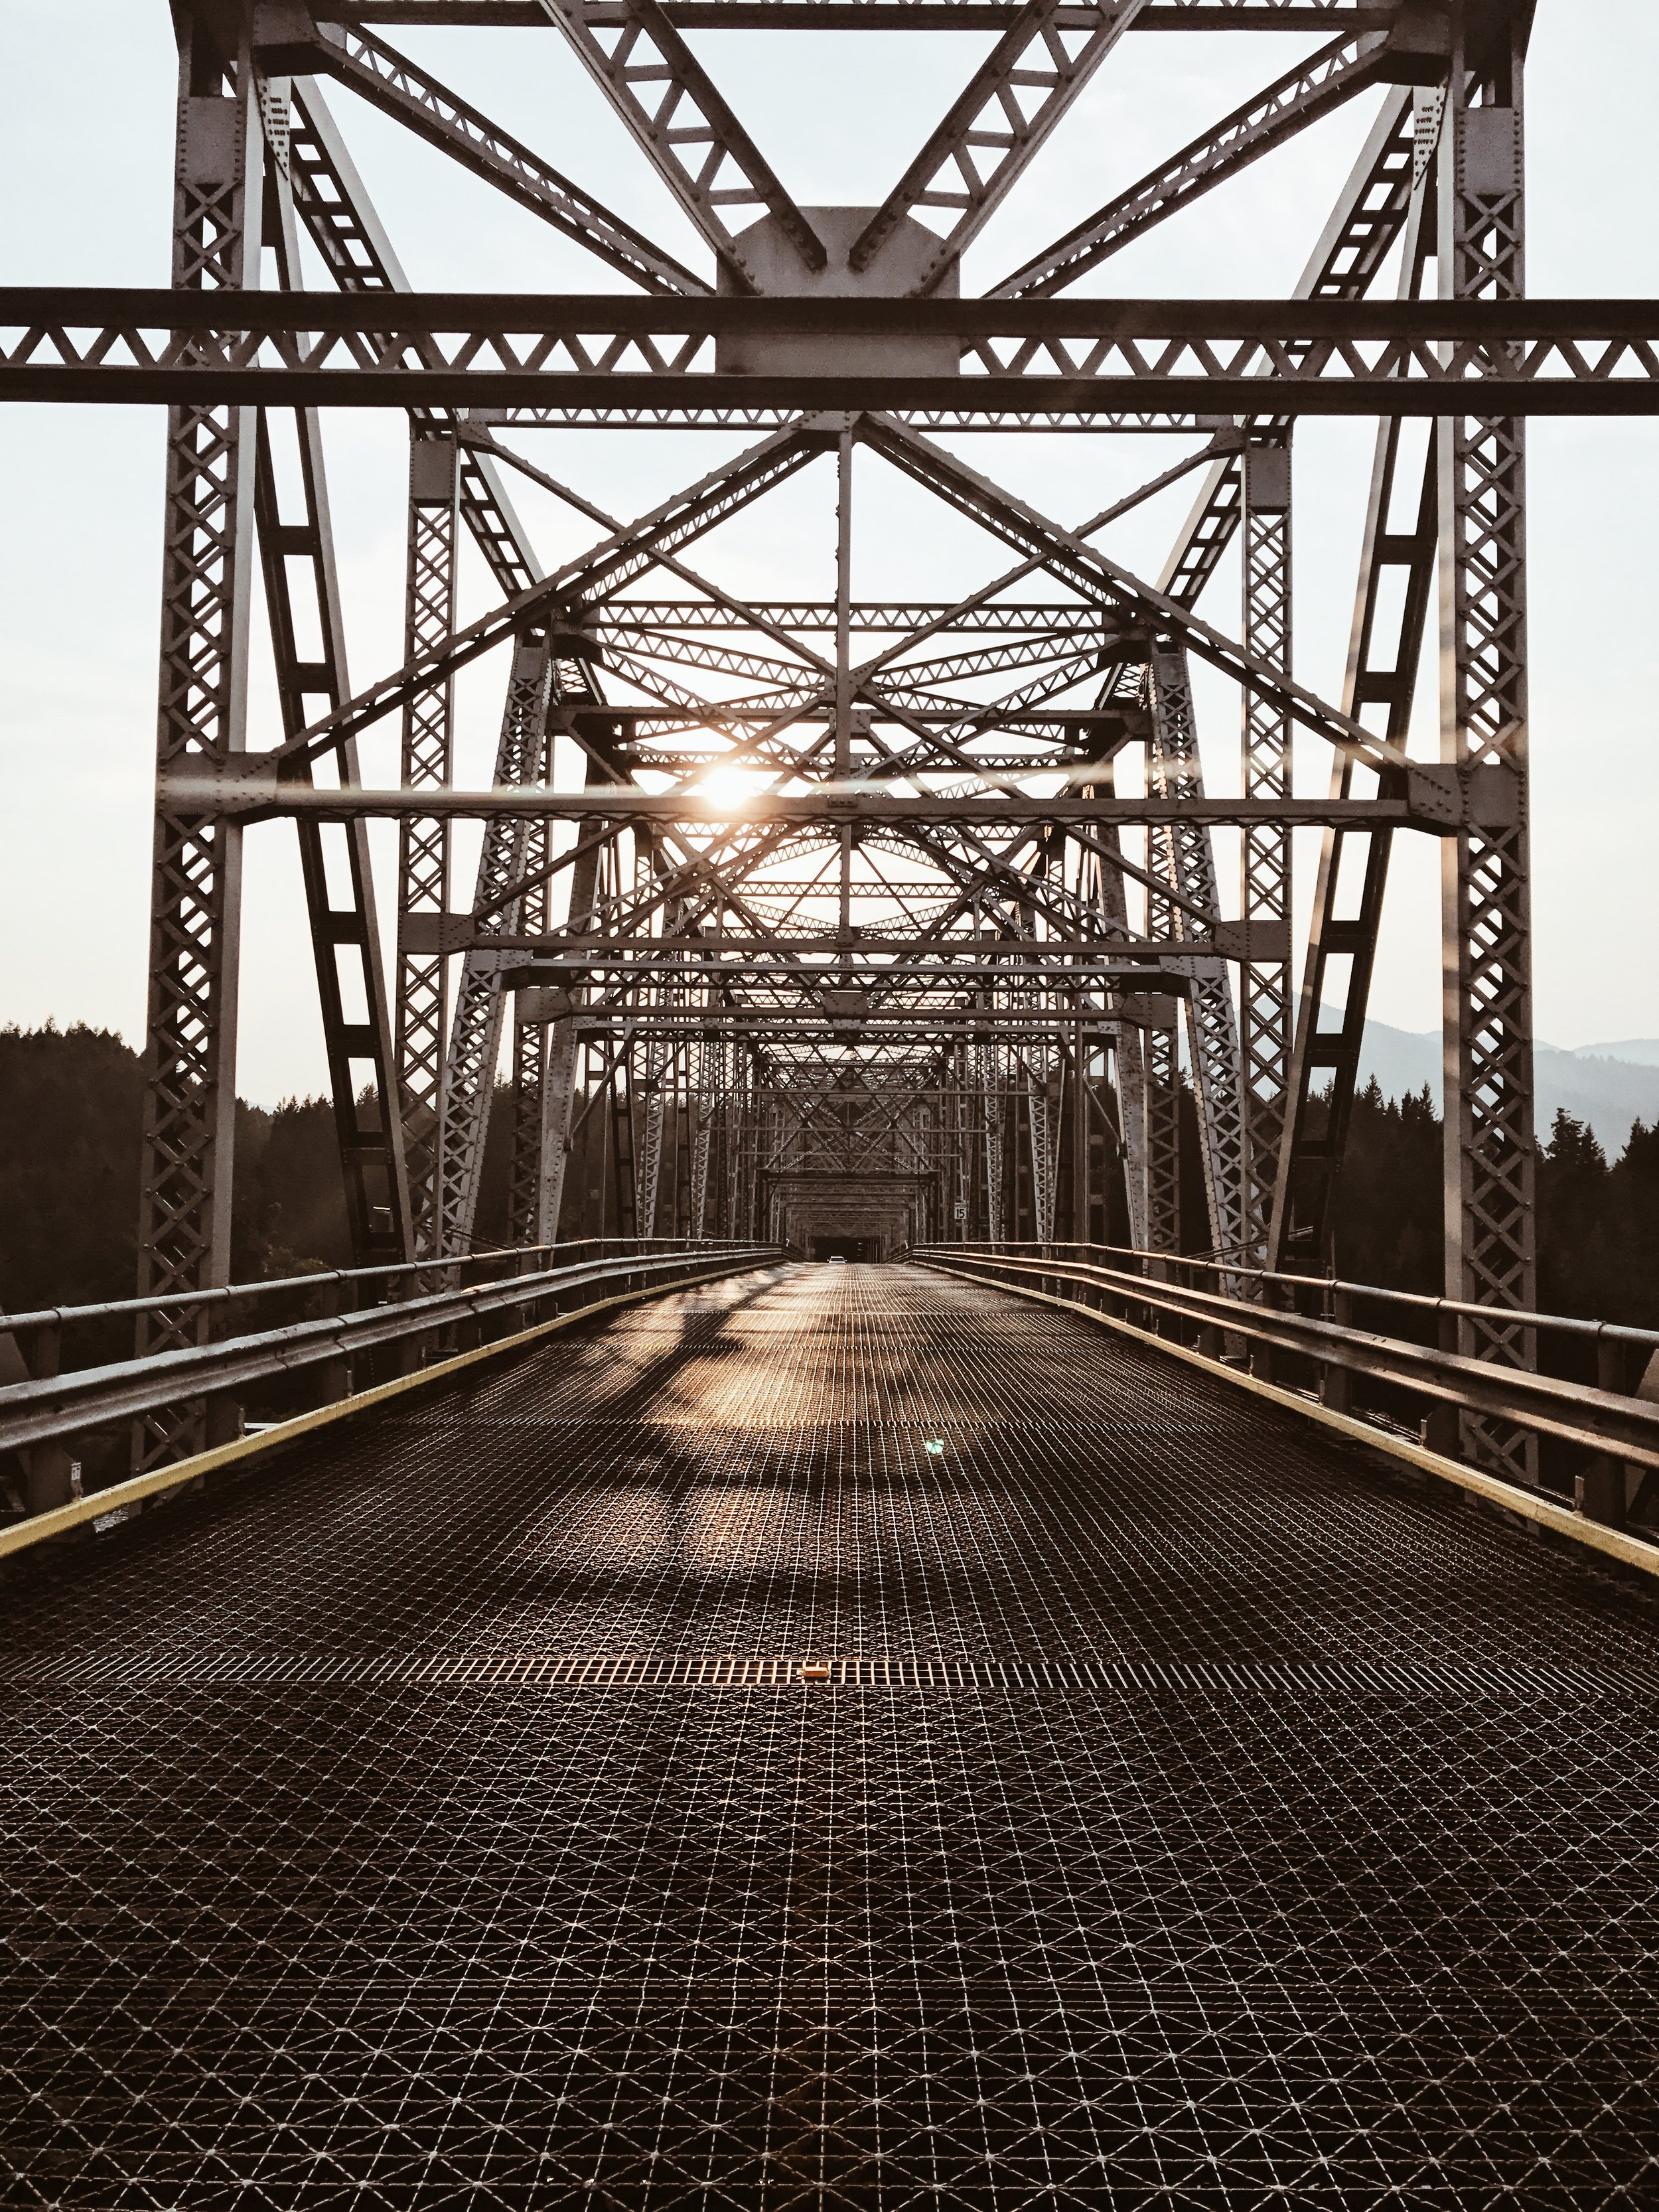 Never have I looked at this bridge from this point of view. Just beautiful.